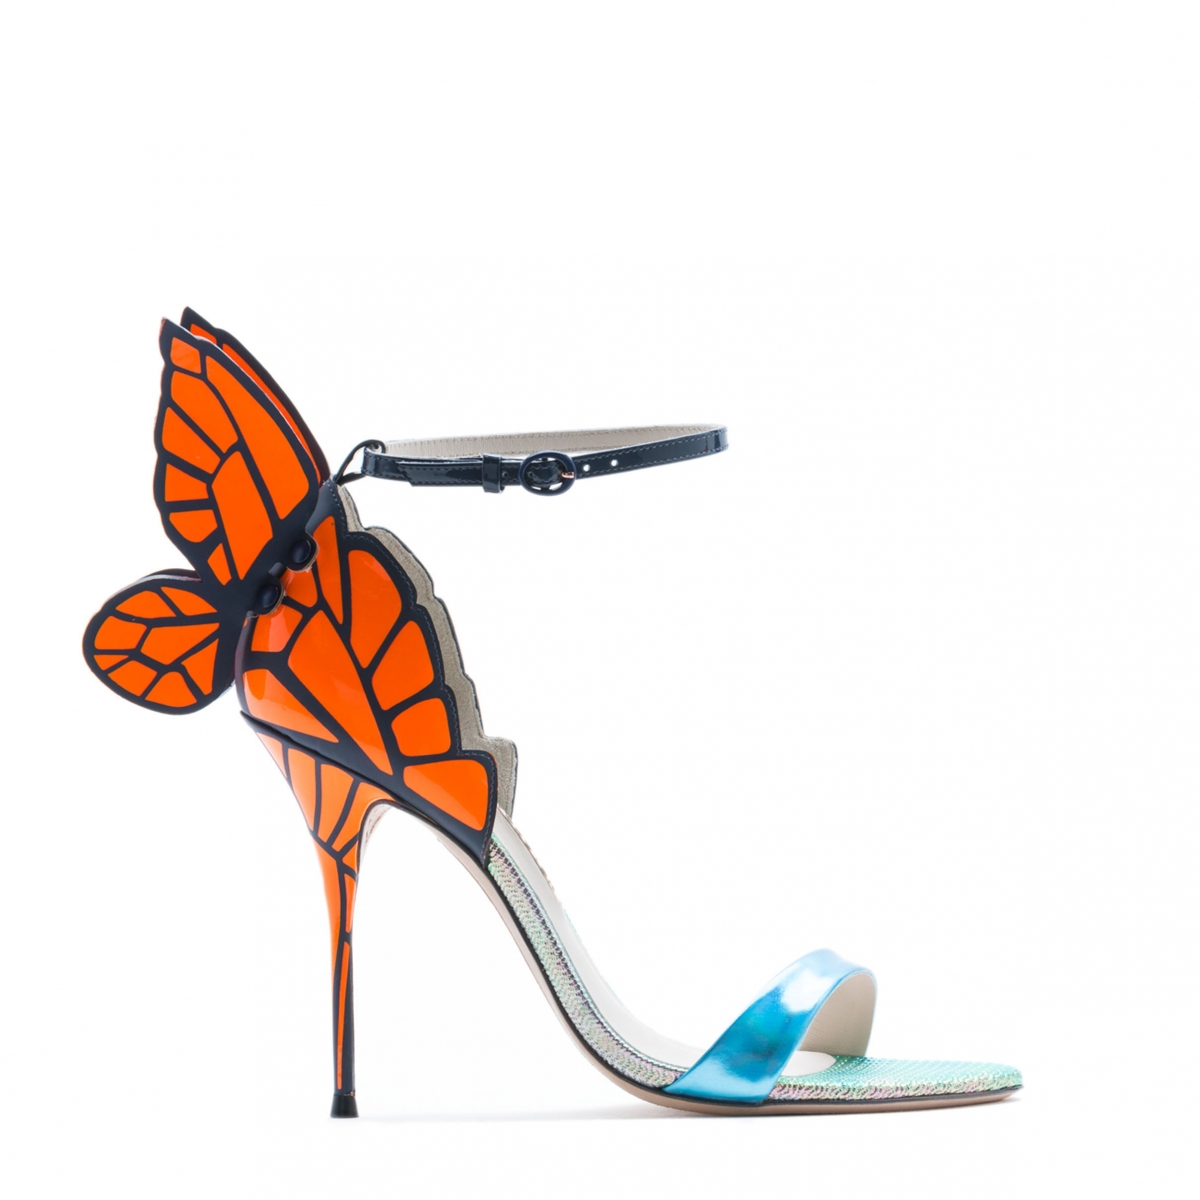 "Freud asked: ""What do women want?"" Poor, clueless Siggy. Women want shoes. And we like the Chiara Holographic Blue Butterfly Sandal by Sophia Webster."